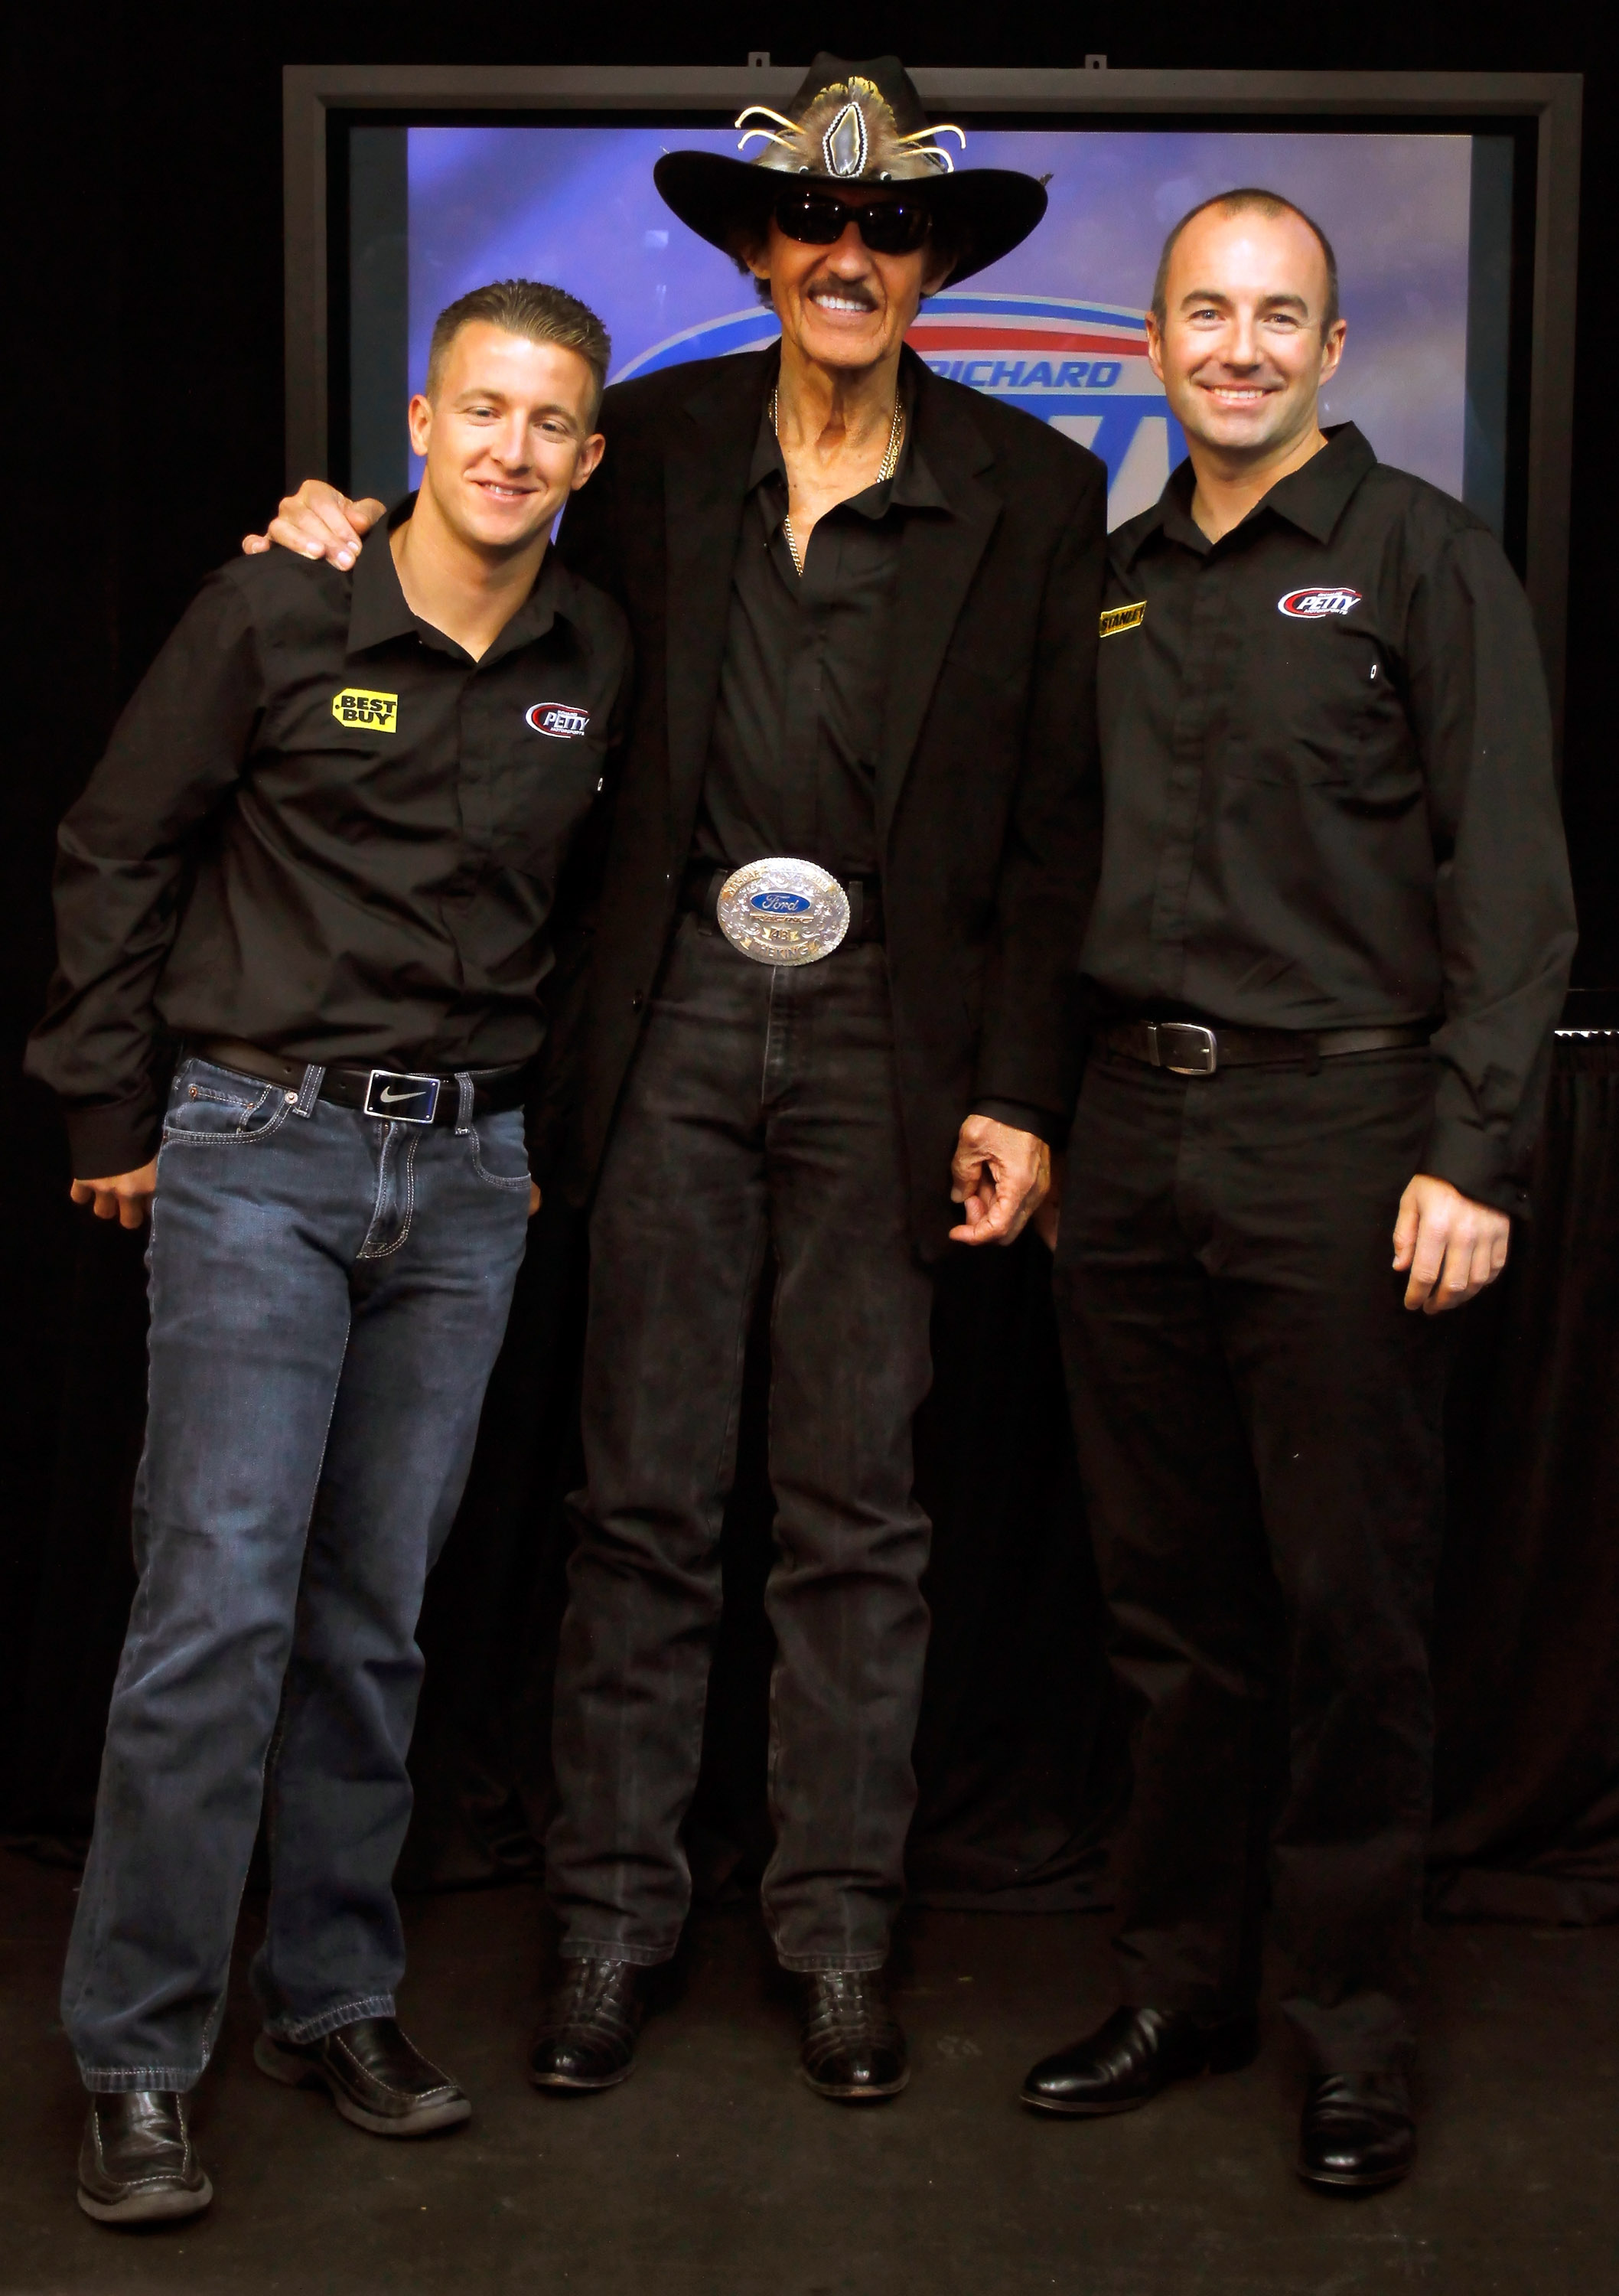 Marcos Ambrose joins Richard Petty and AJ Allmendinger for the 2011 season.